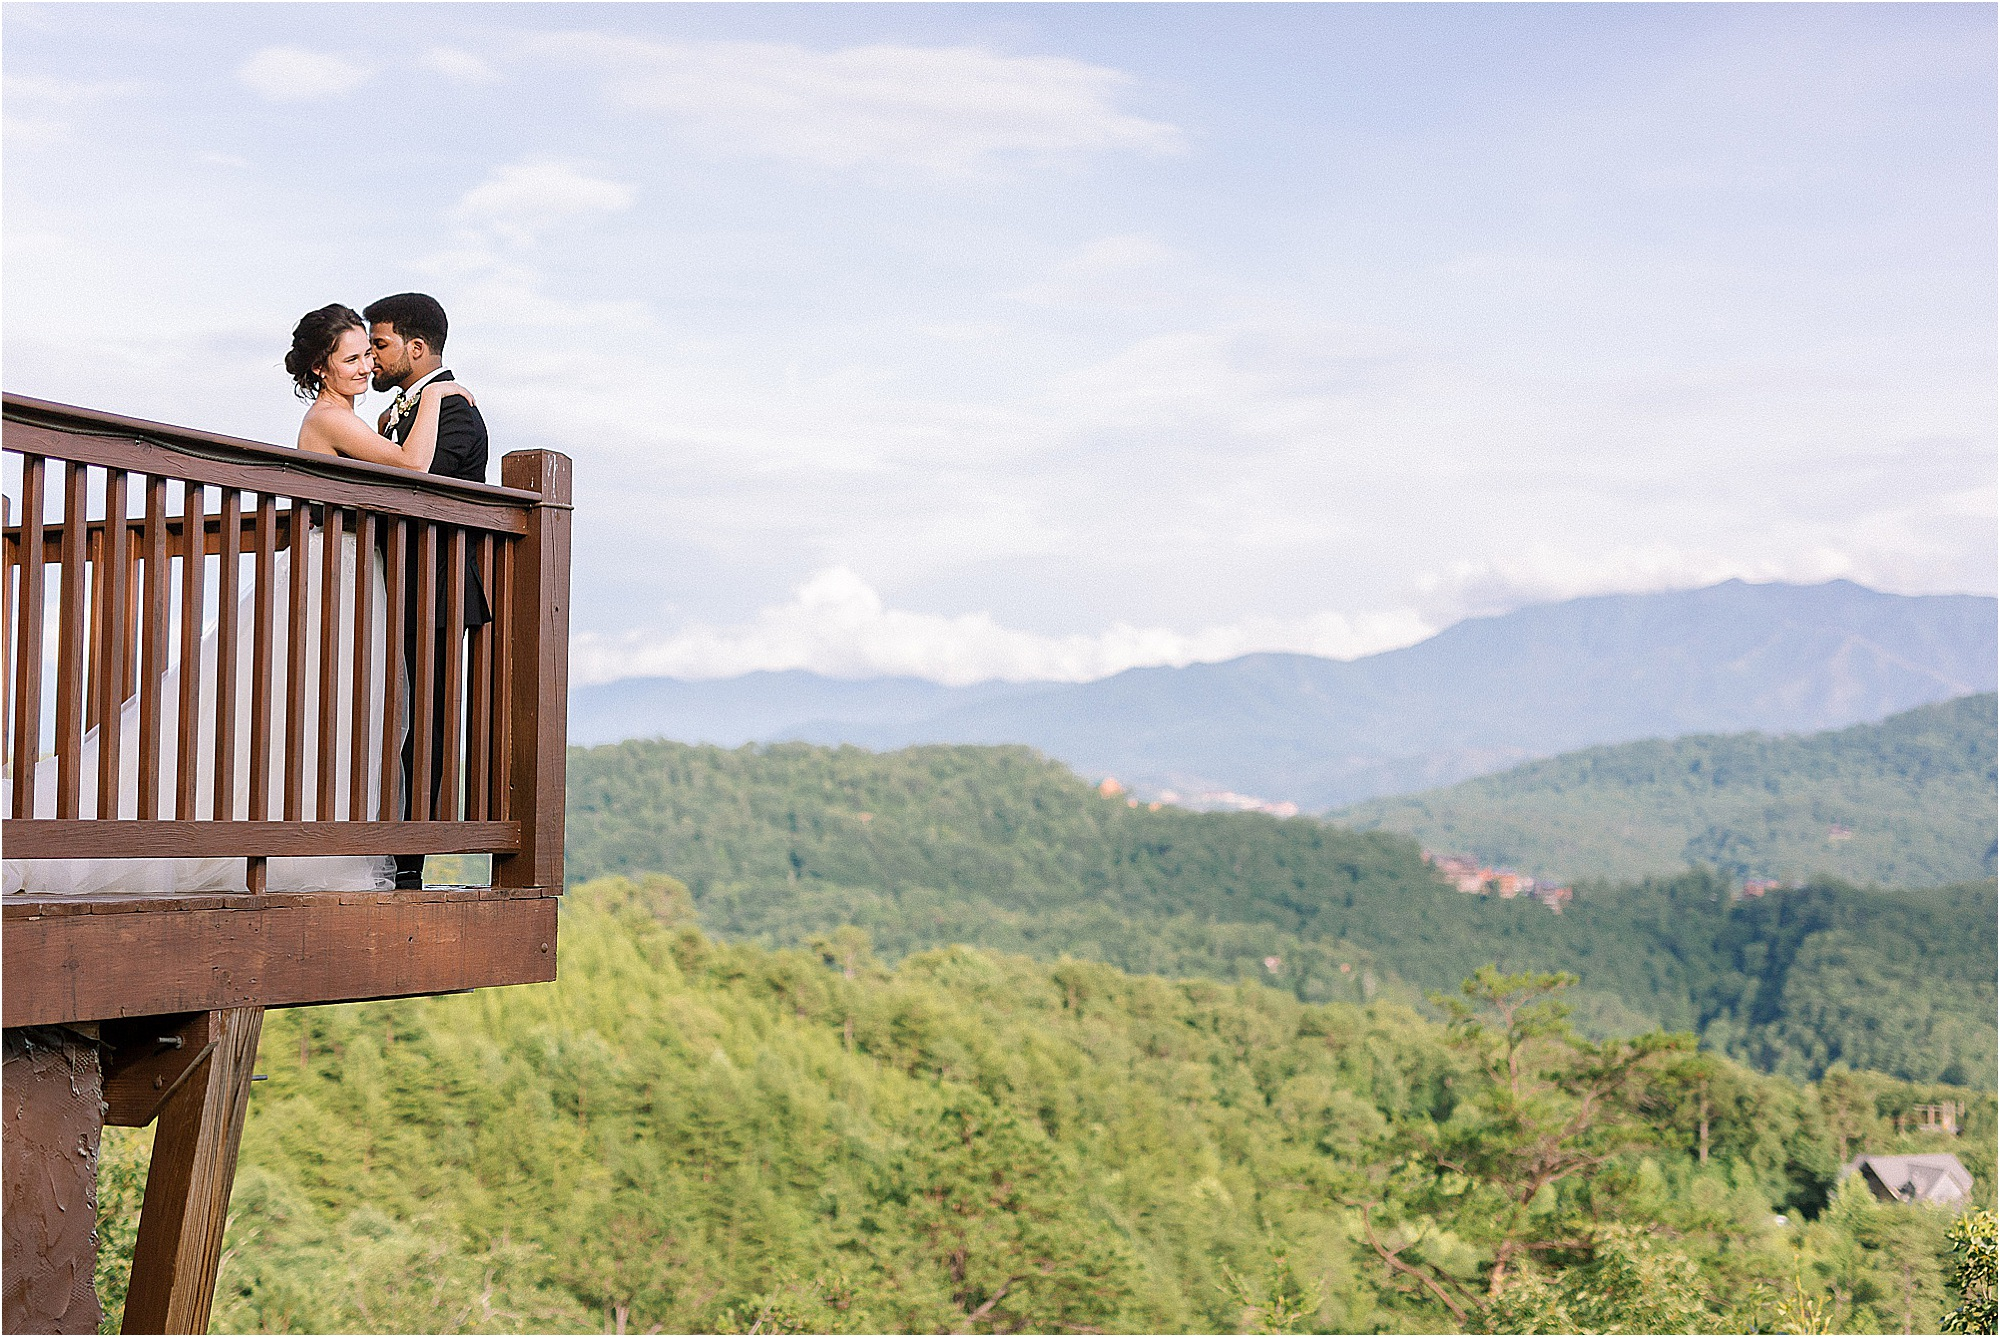 man and woman kiss on balcony overlooking mountains